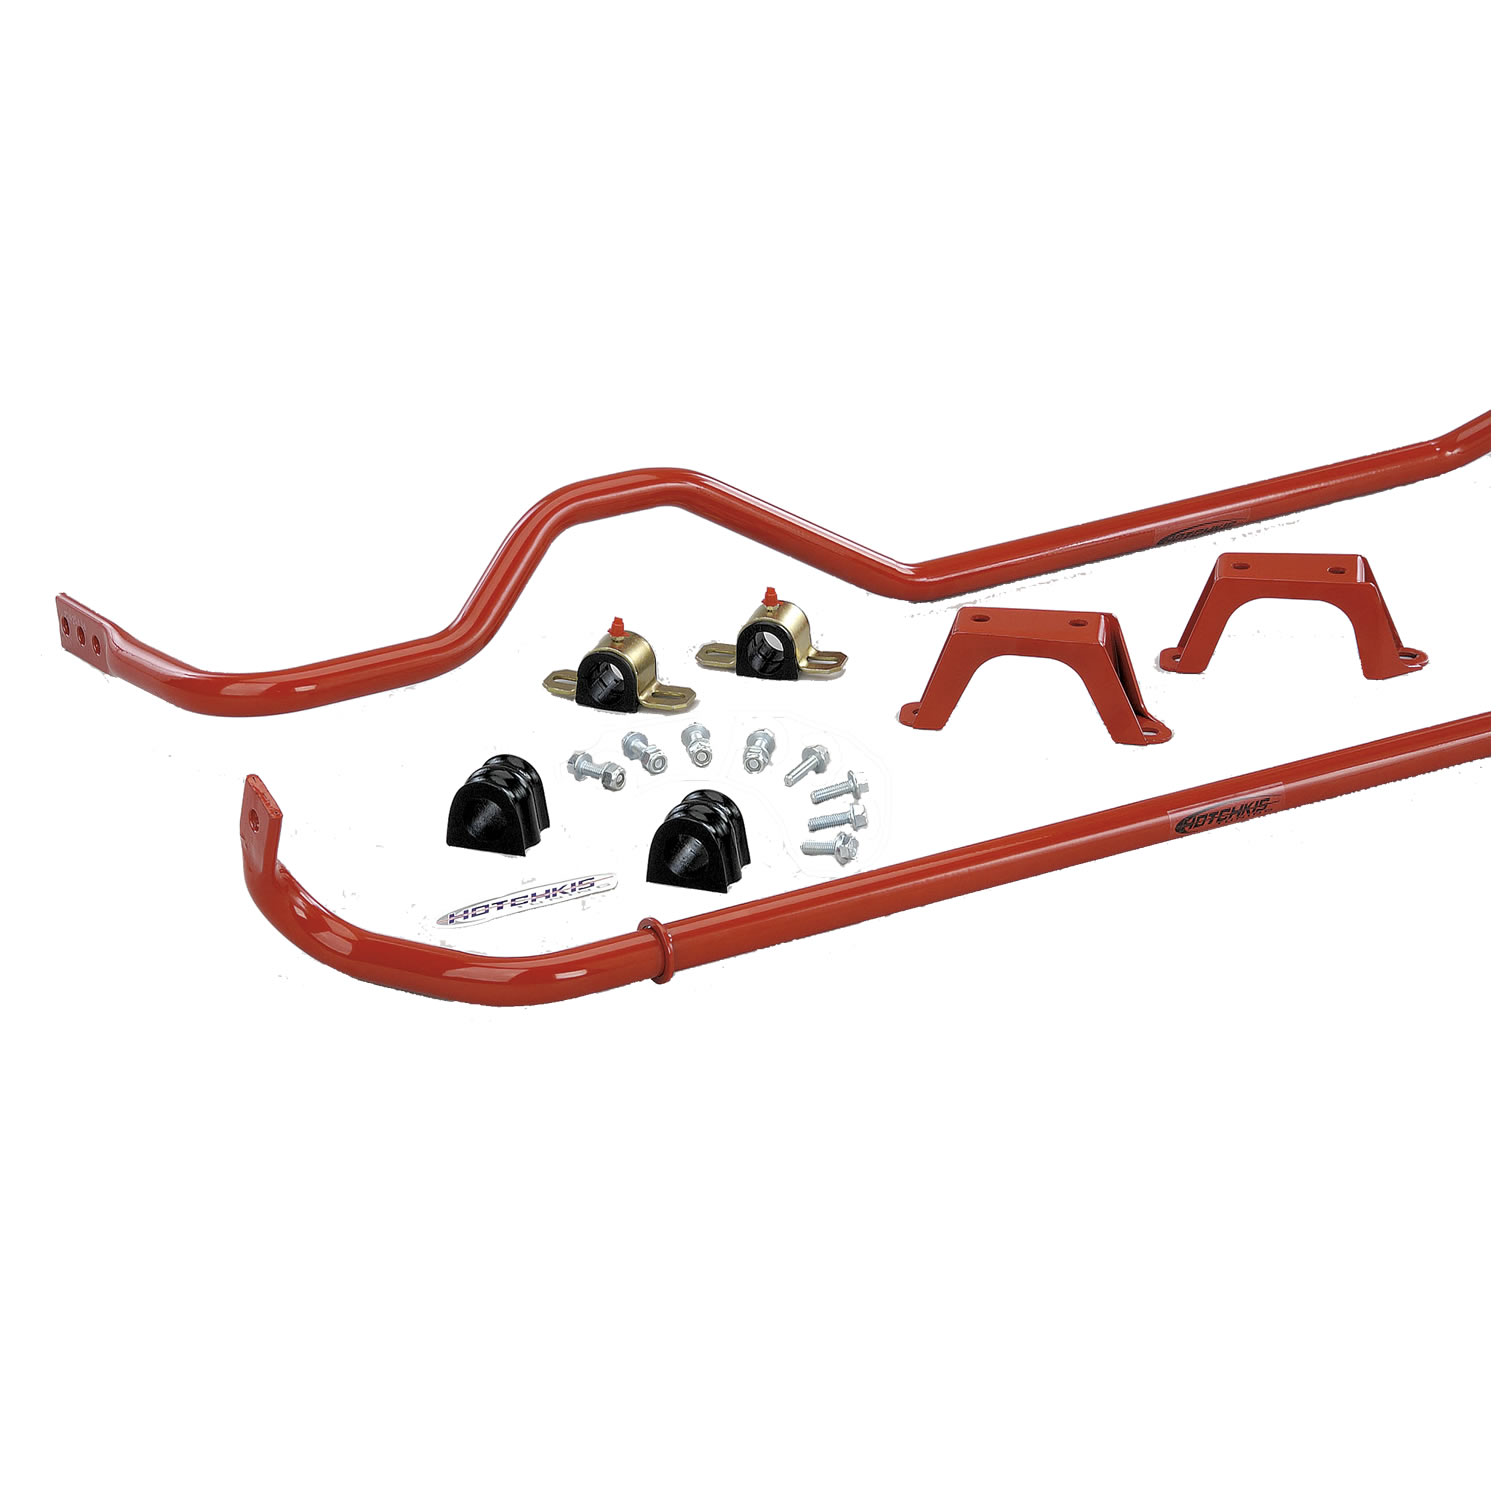 2001-2007 Subaru WRX Sport Sway Bar Set from Hotchkis Sport Suspension